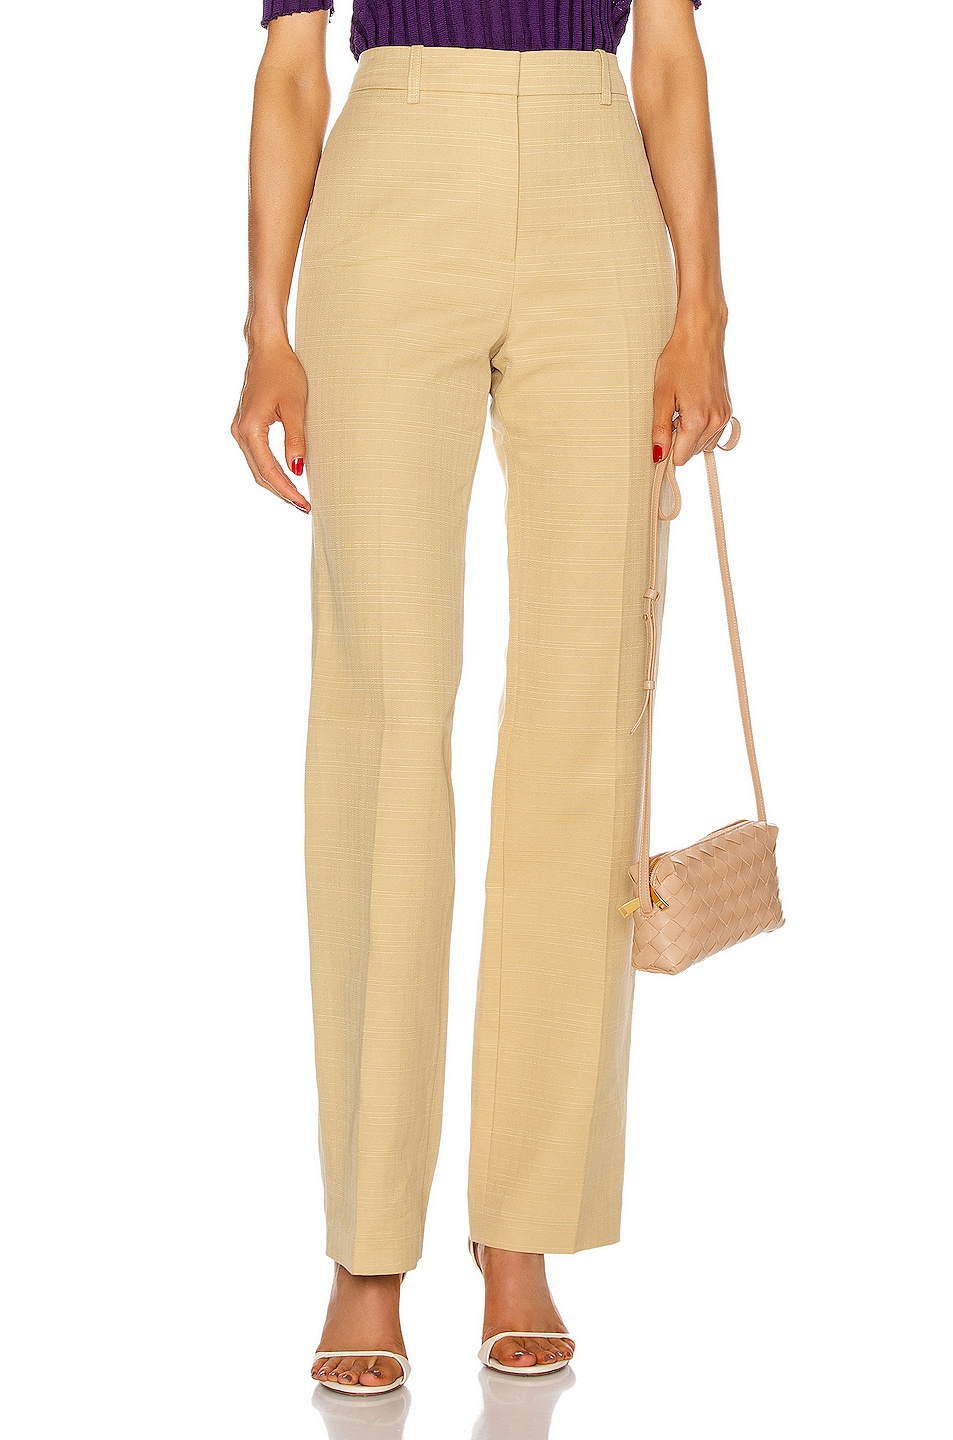 Image 1 of Victoria Beckham High Waisted Slim Leg Trouser in Sand